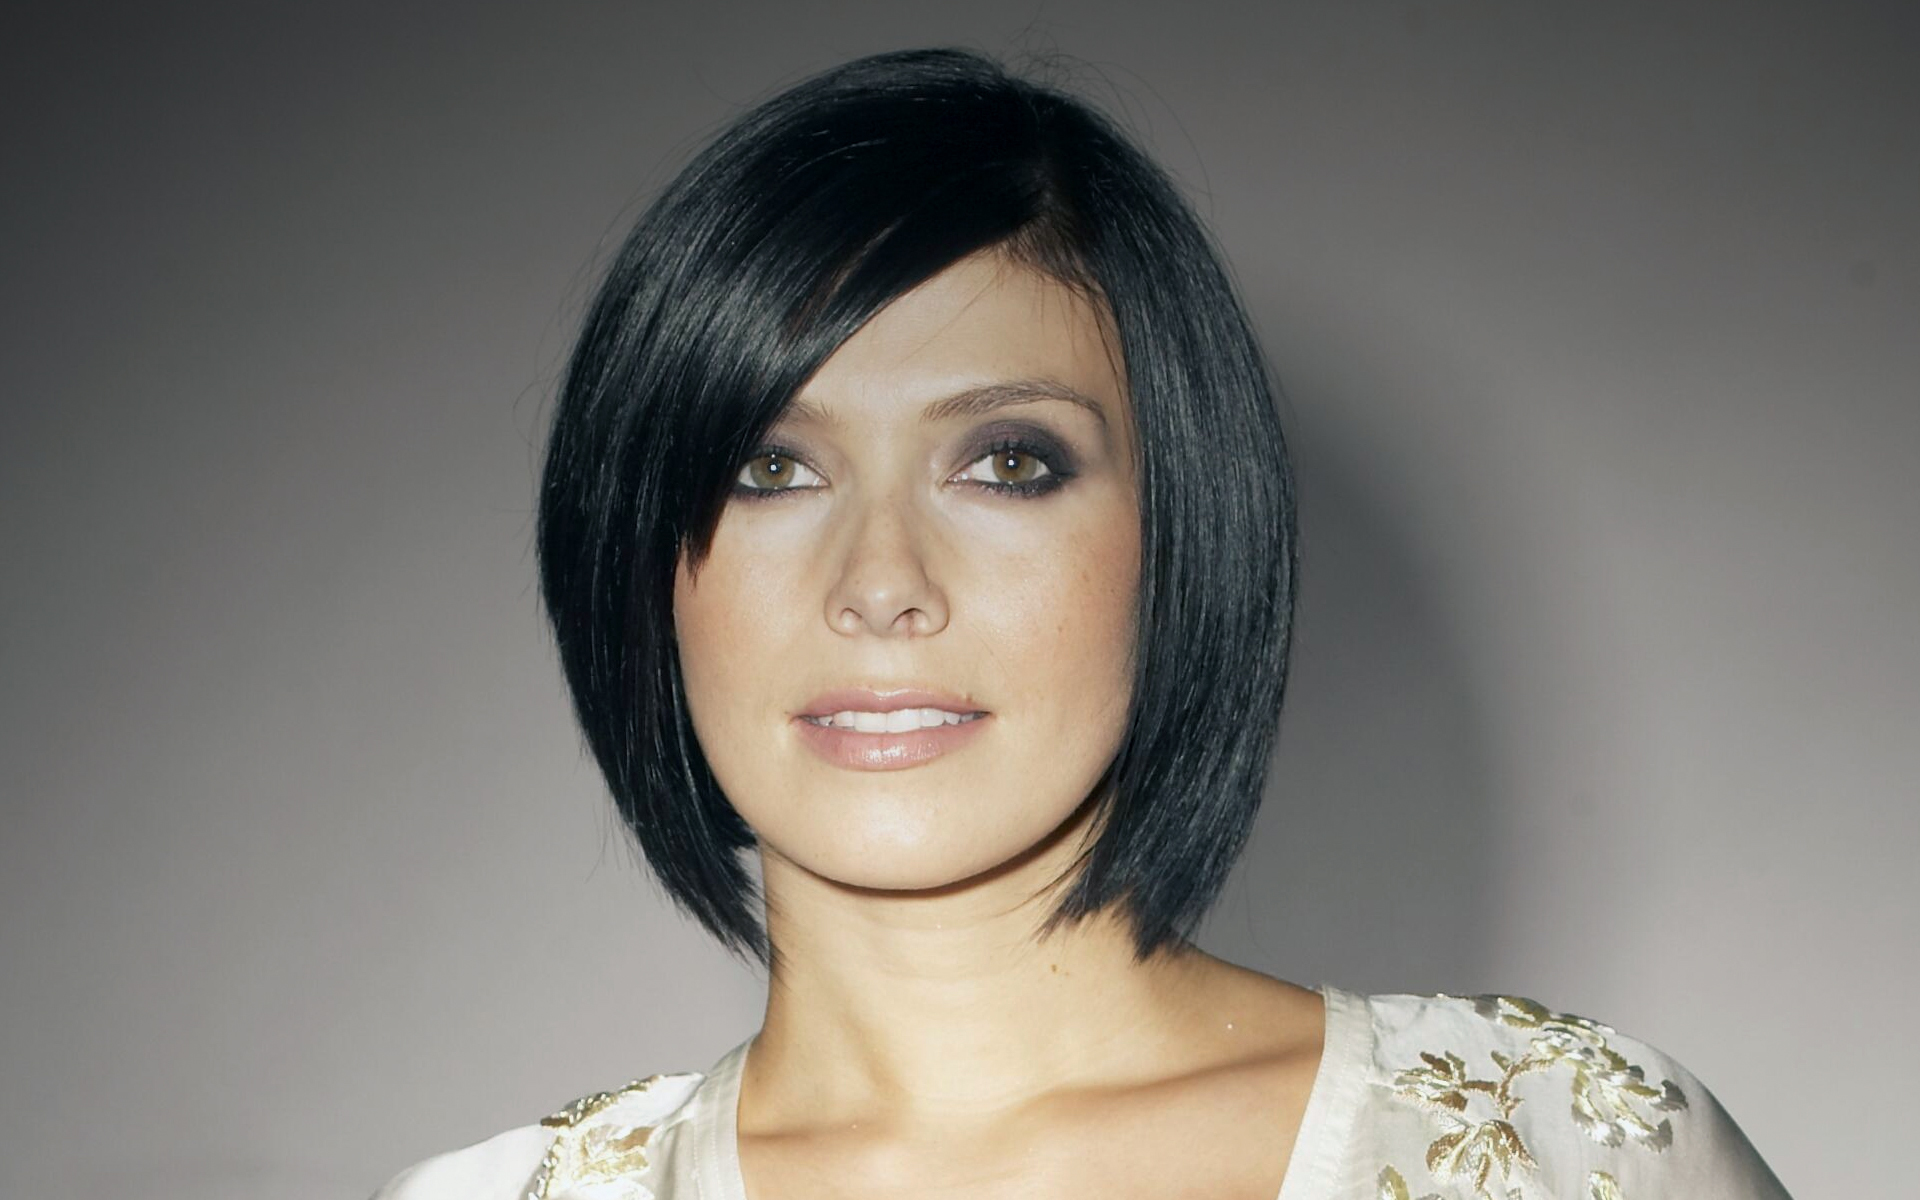 Pictures Of Kym Marsh